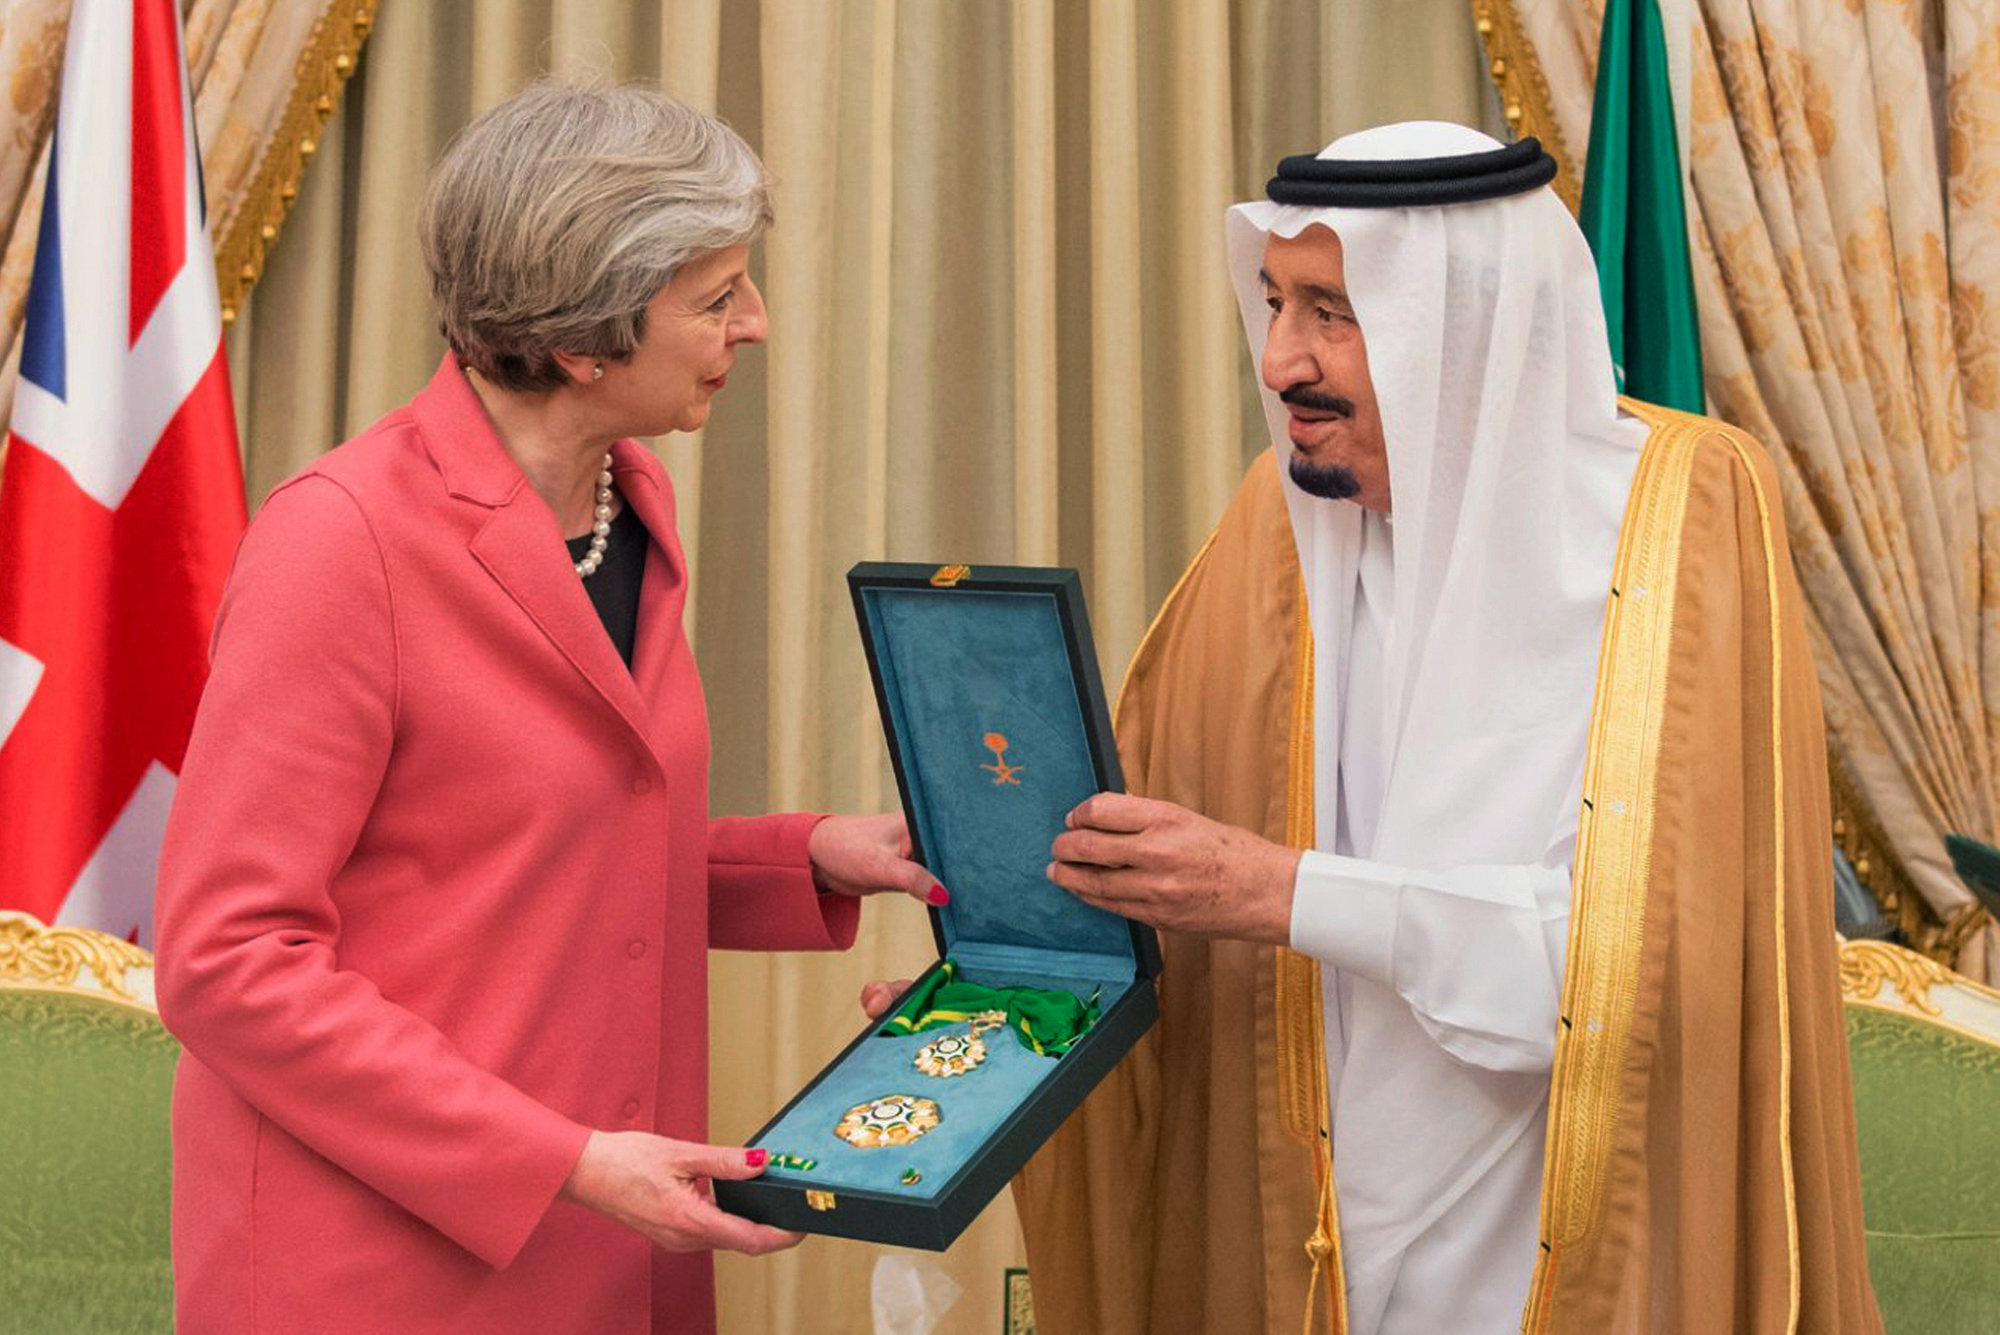 In this photo released by Saudi Press Agency, SPA, Saudi King Salman, right, presents a gift to British Prime Minister Theresa May, in Riyadh, Saudi Arabia, Wednesday, April 5, 2017